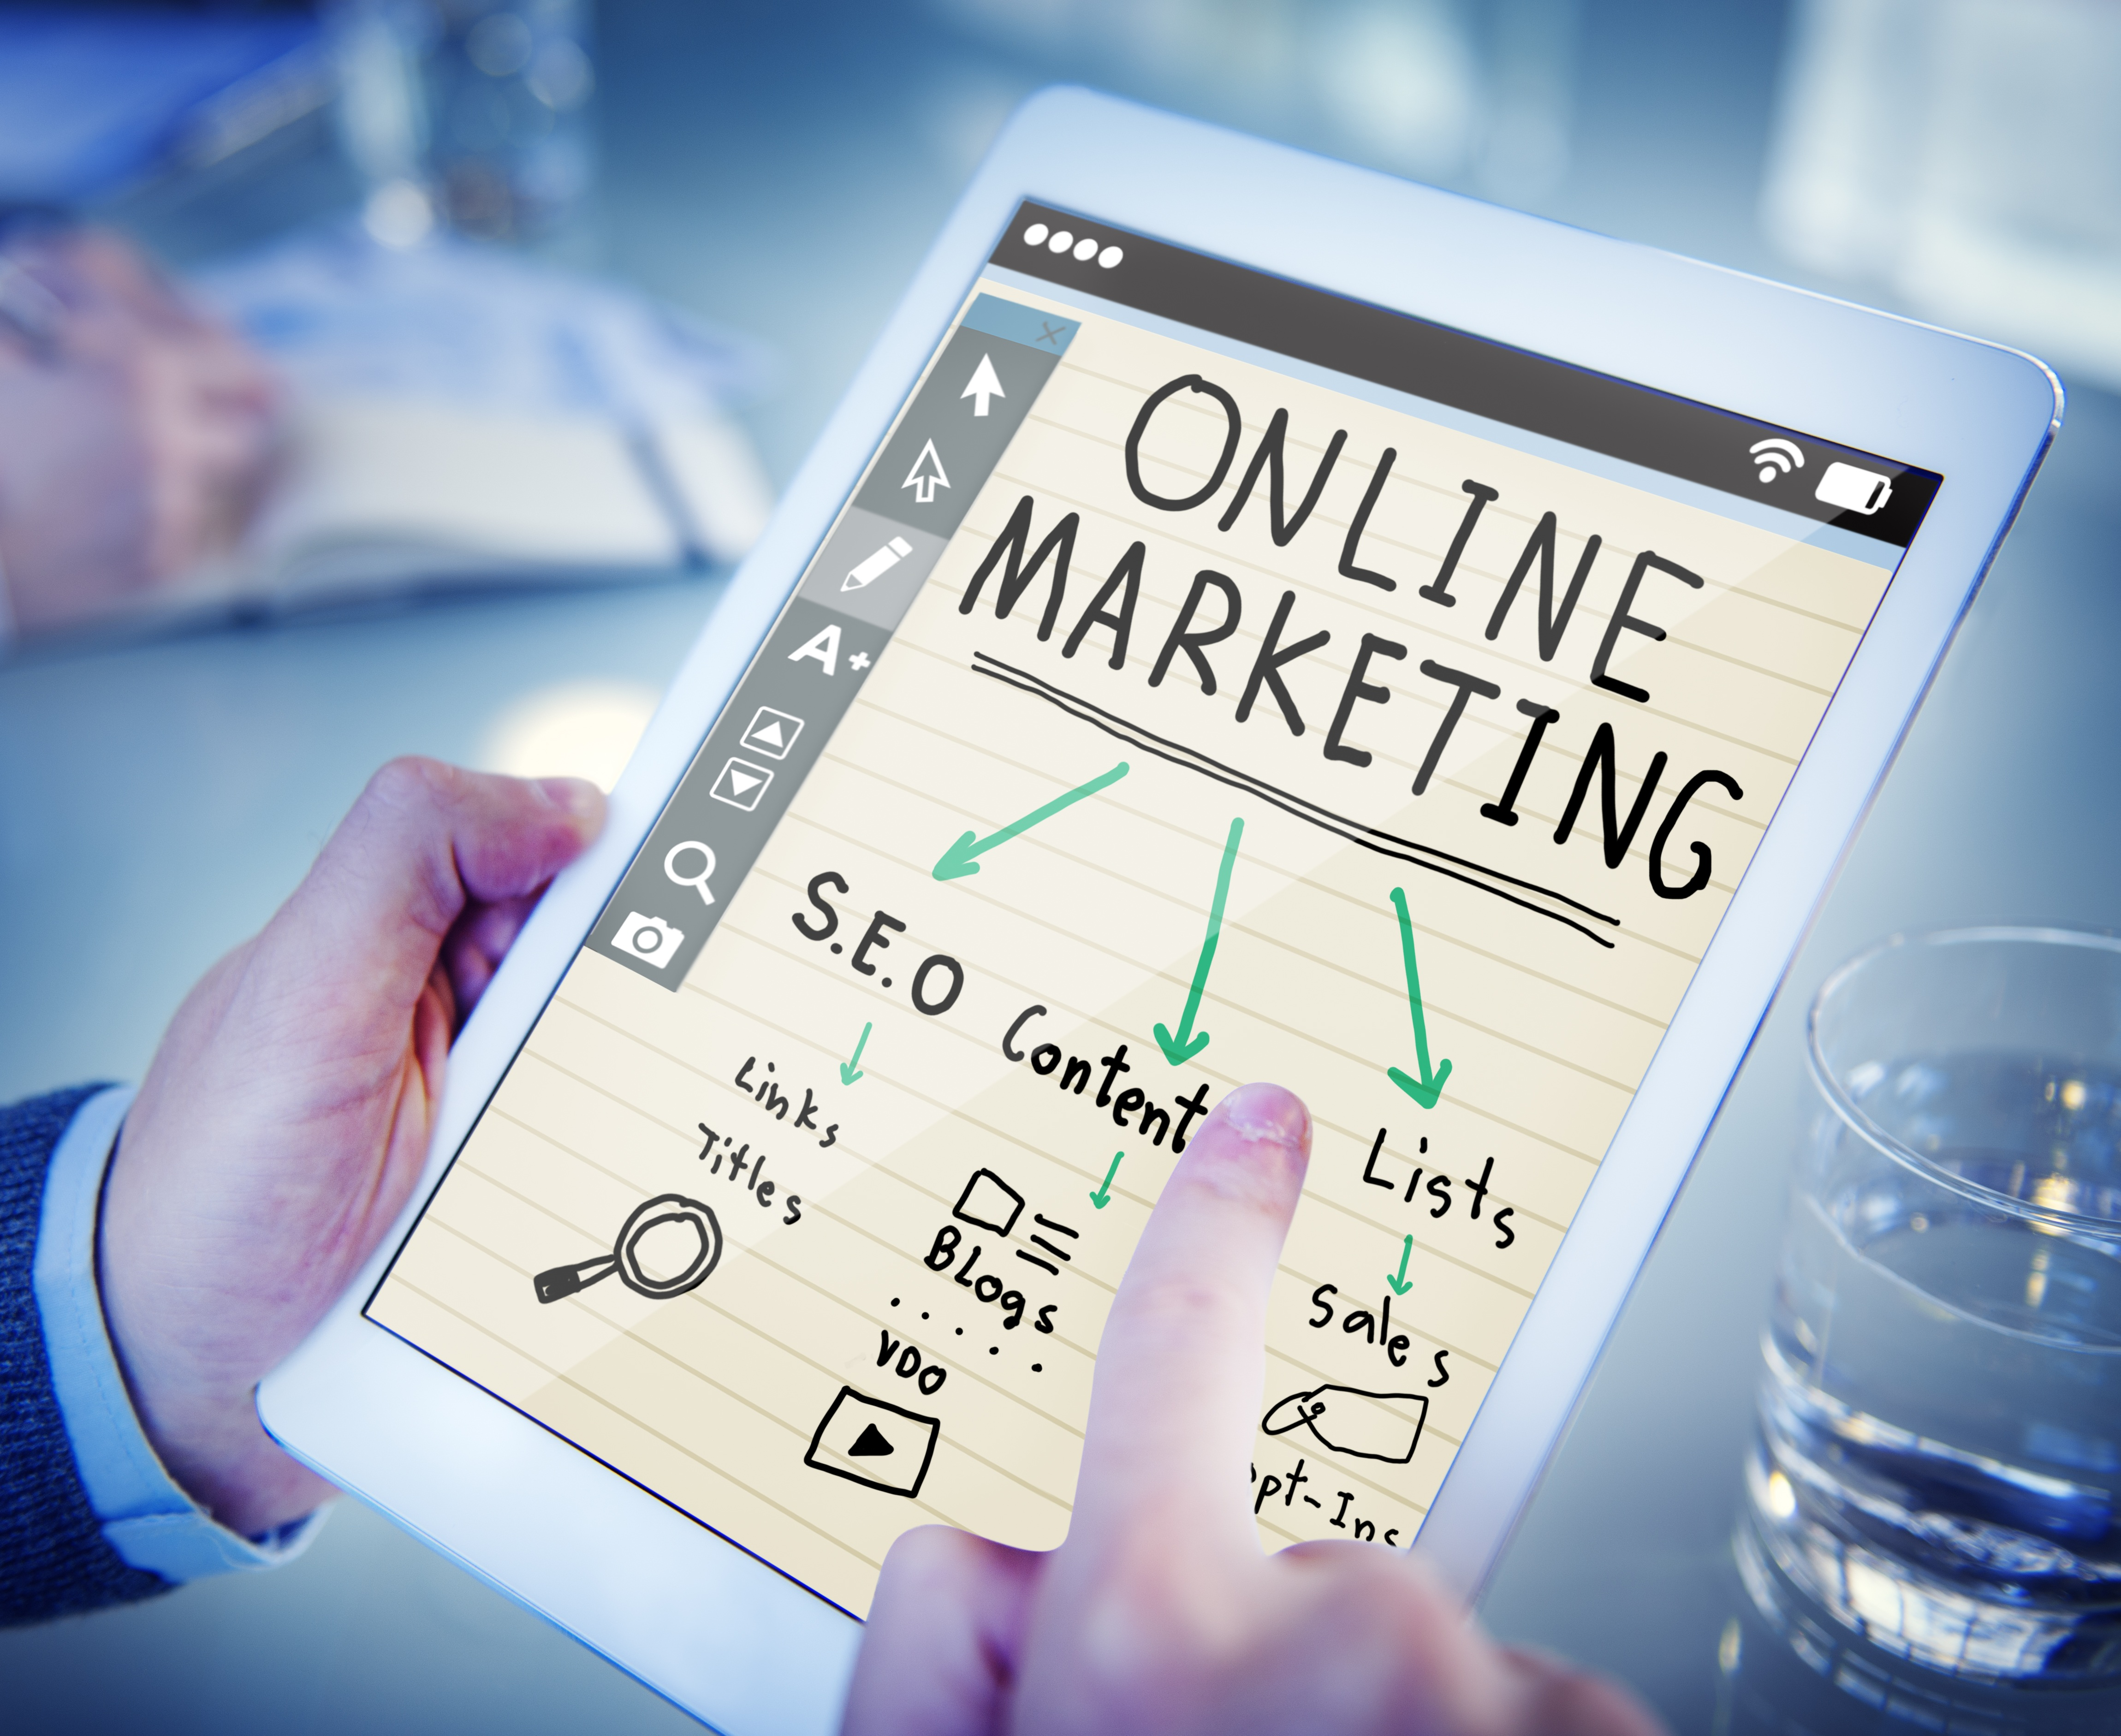 5 Important Tips for Growing a Niche Ecommerce Business